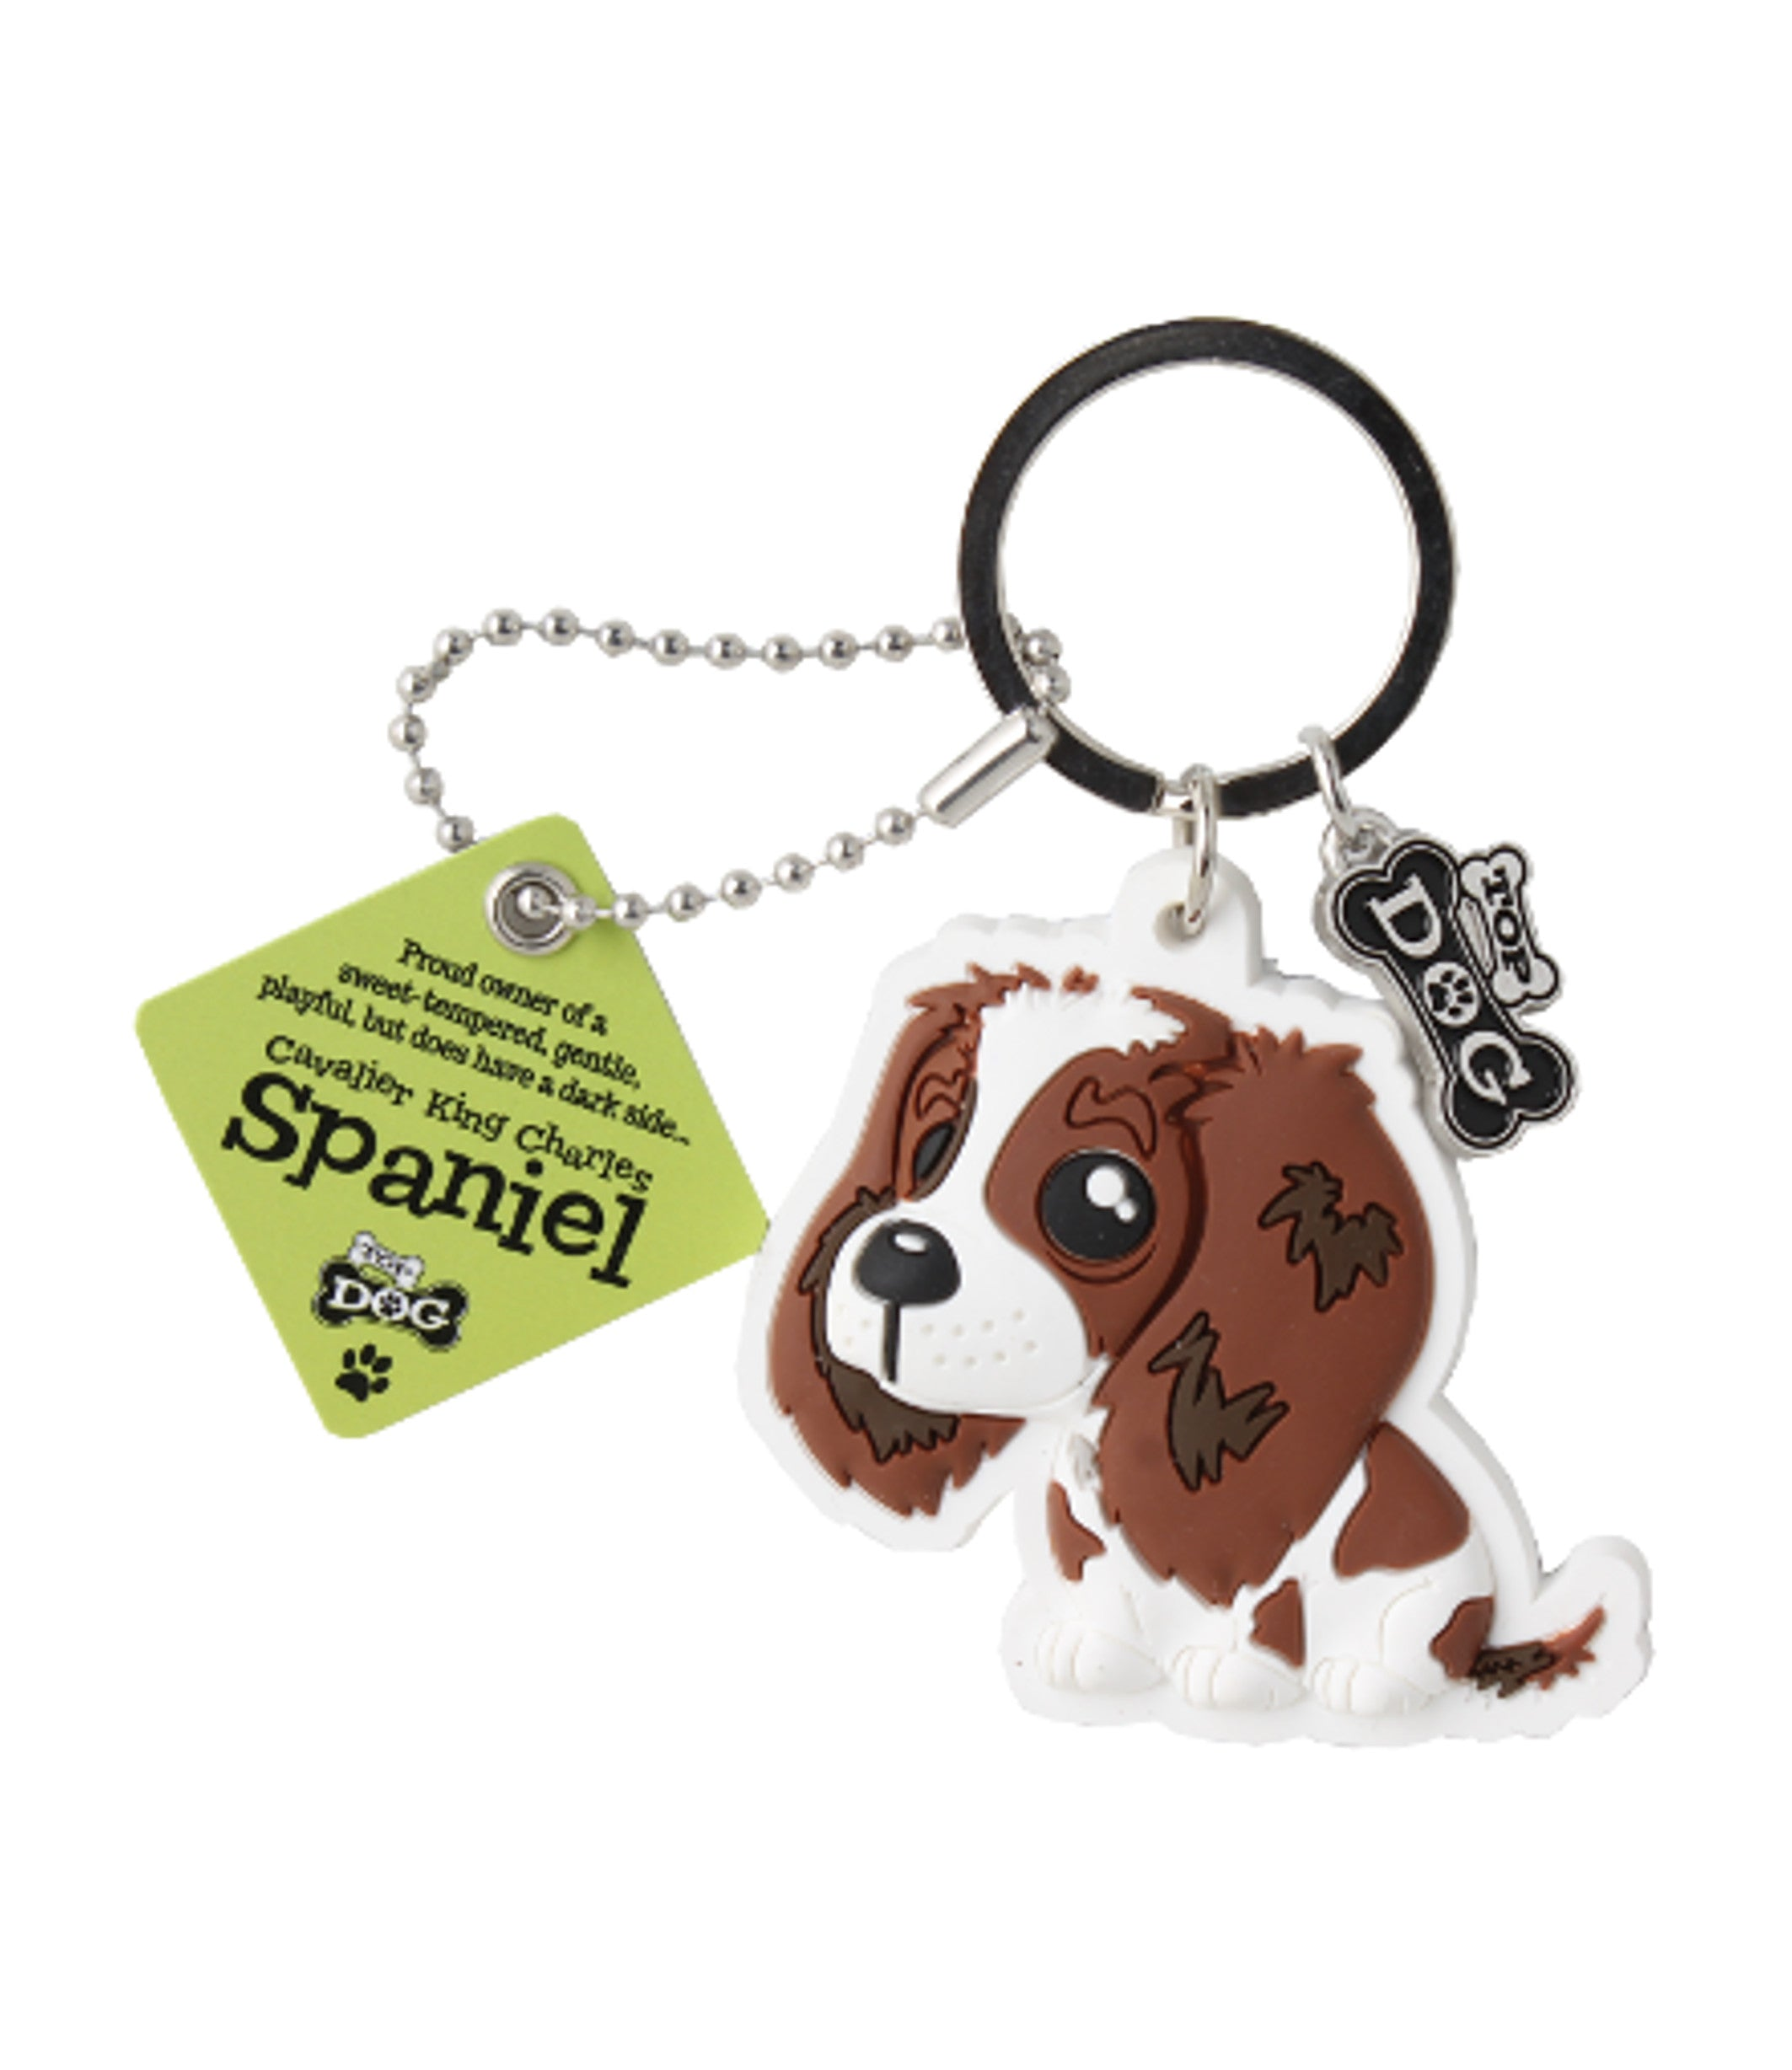 H&H Wags & Whiskers Keyring: Cavalier King Charles Spaniel - Gift Horse Online